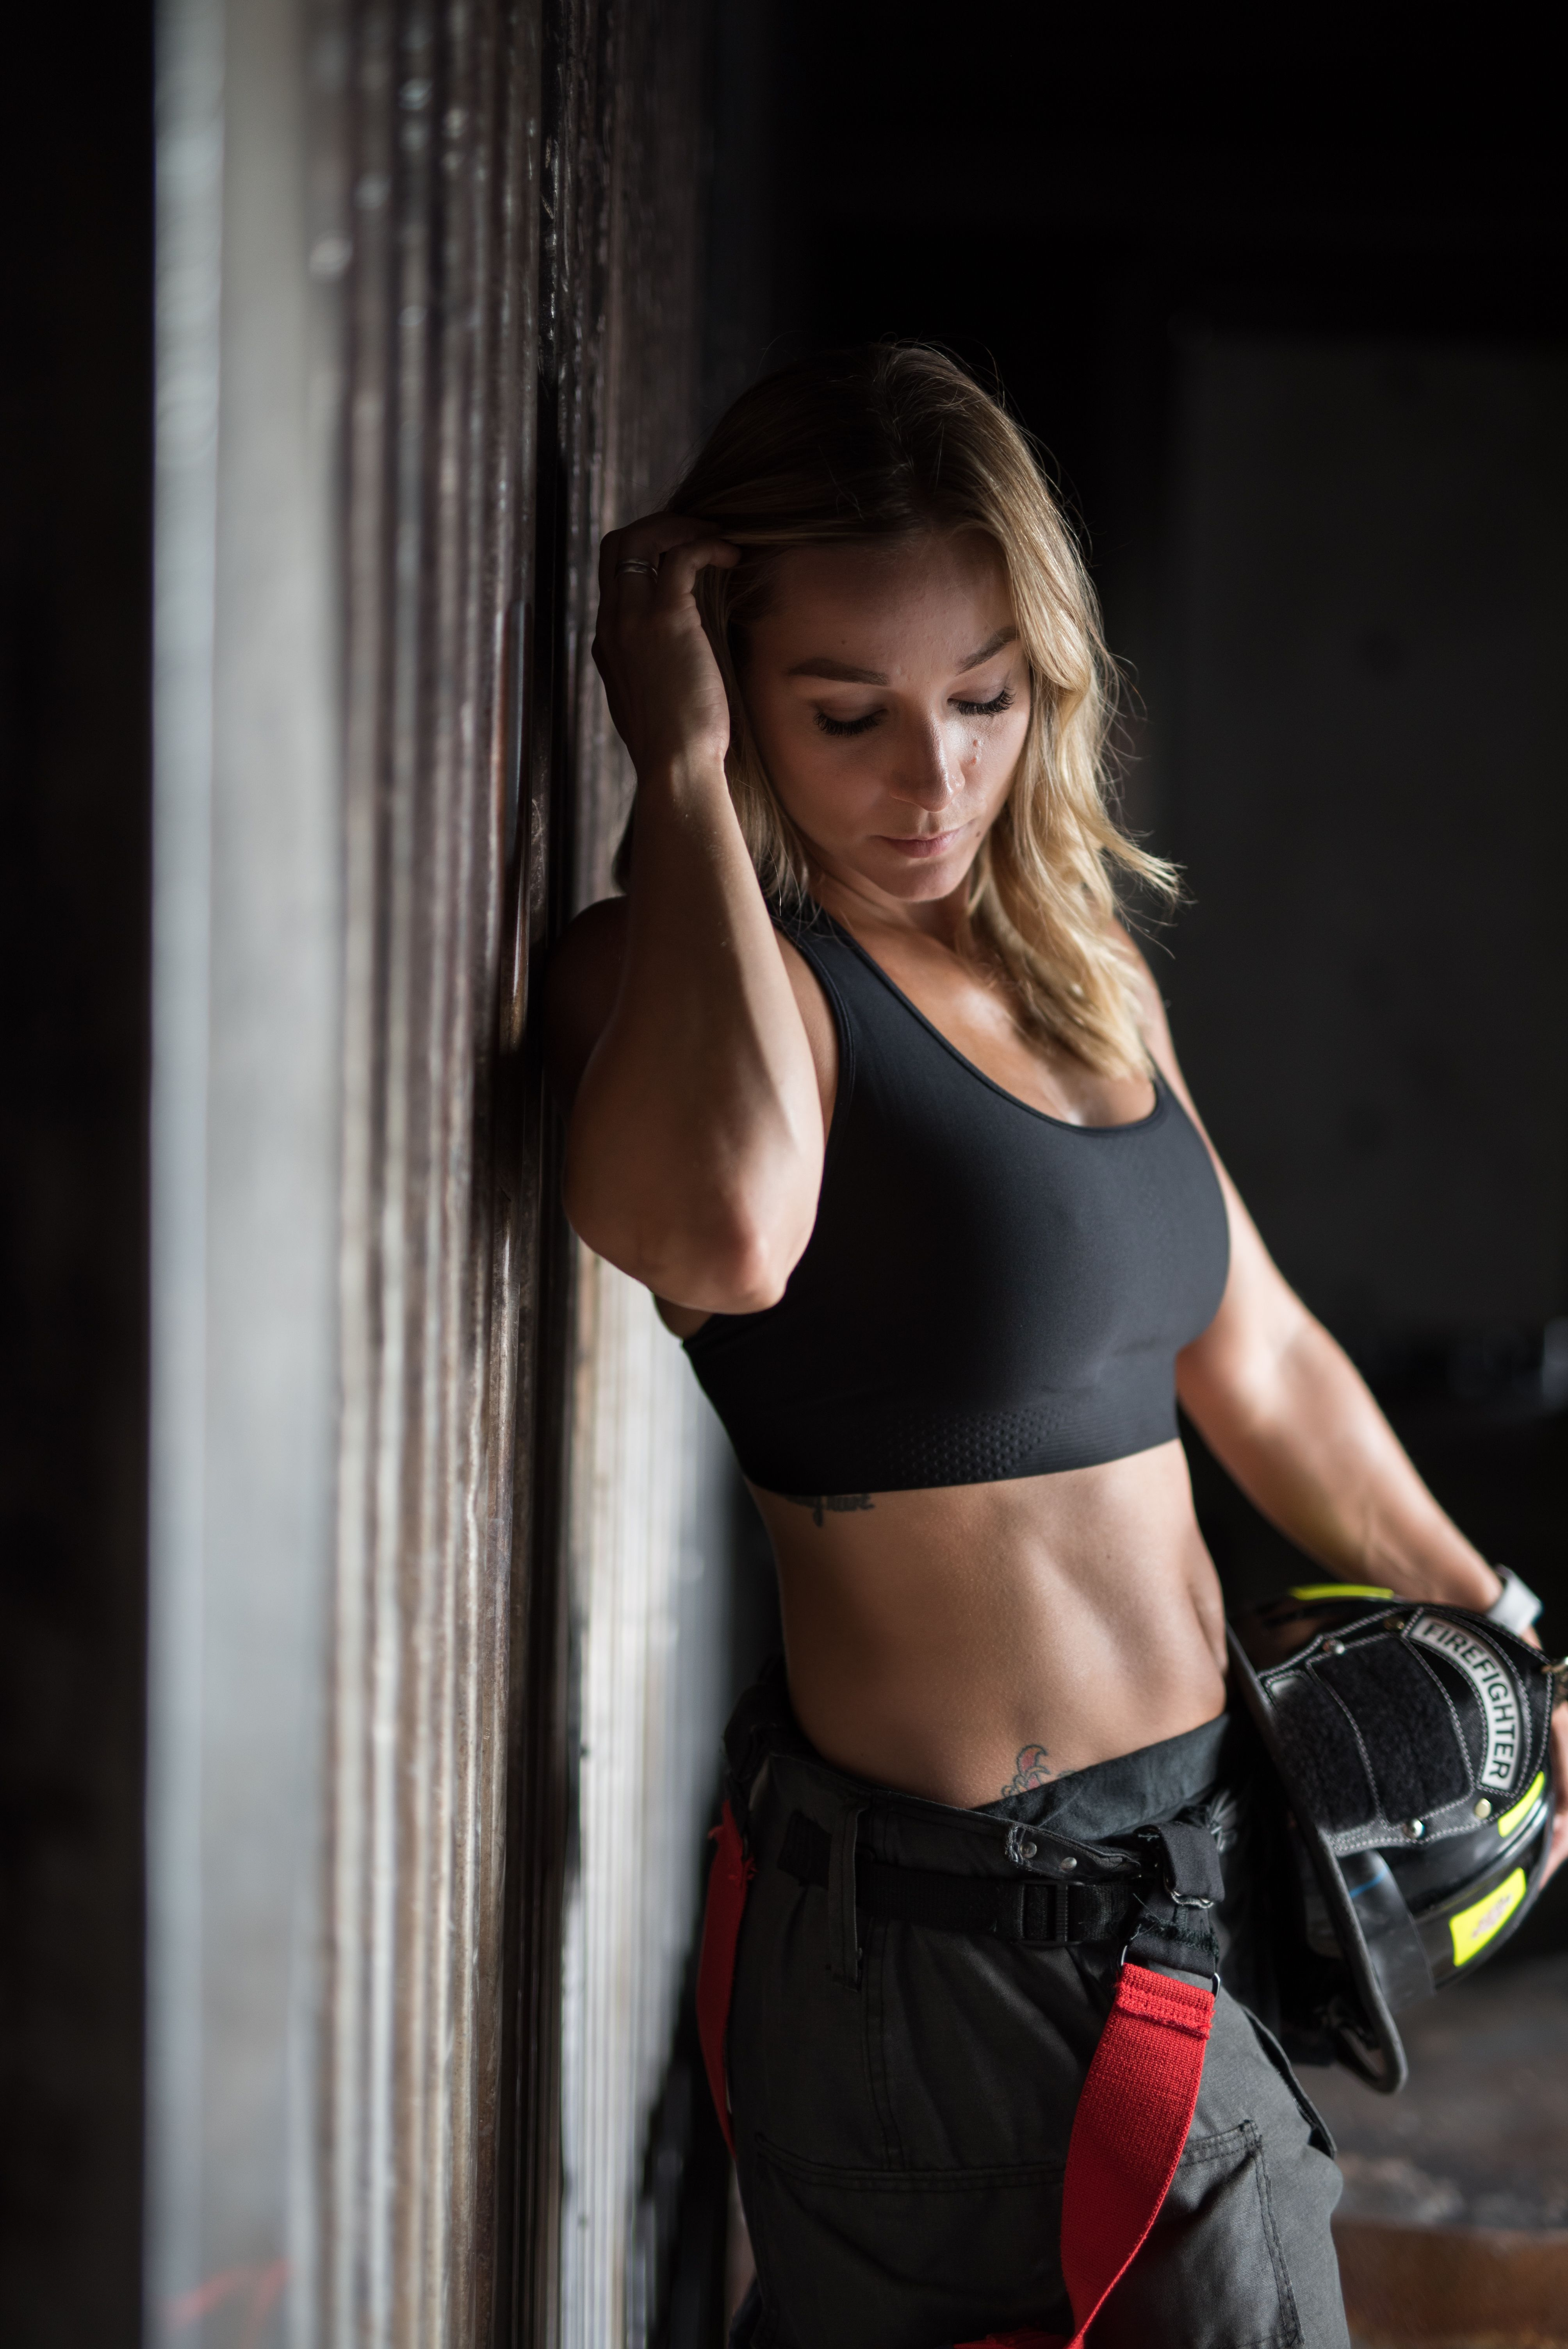 Fitness Firefighter Calendar In 2020 Fitness Photography